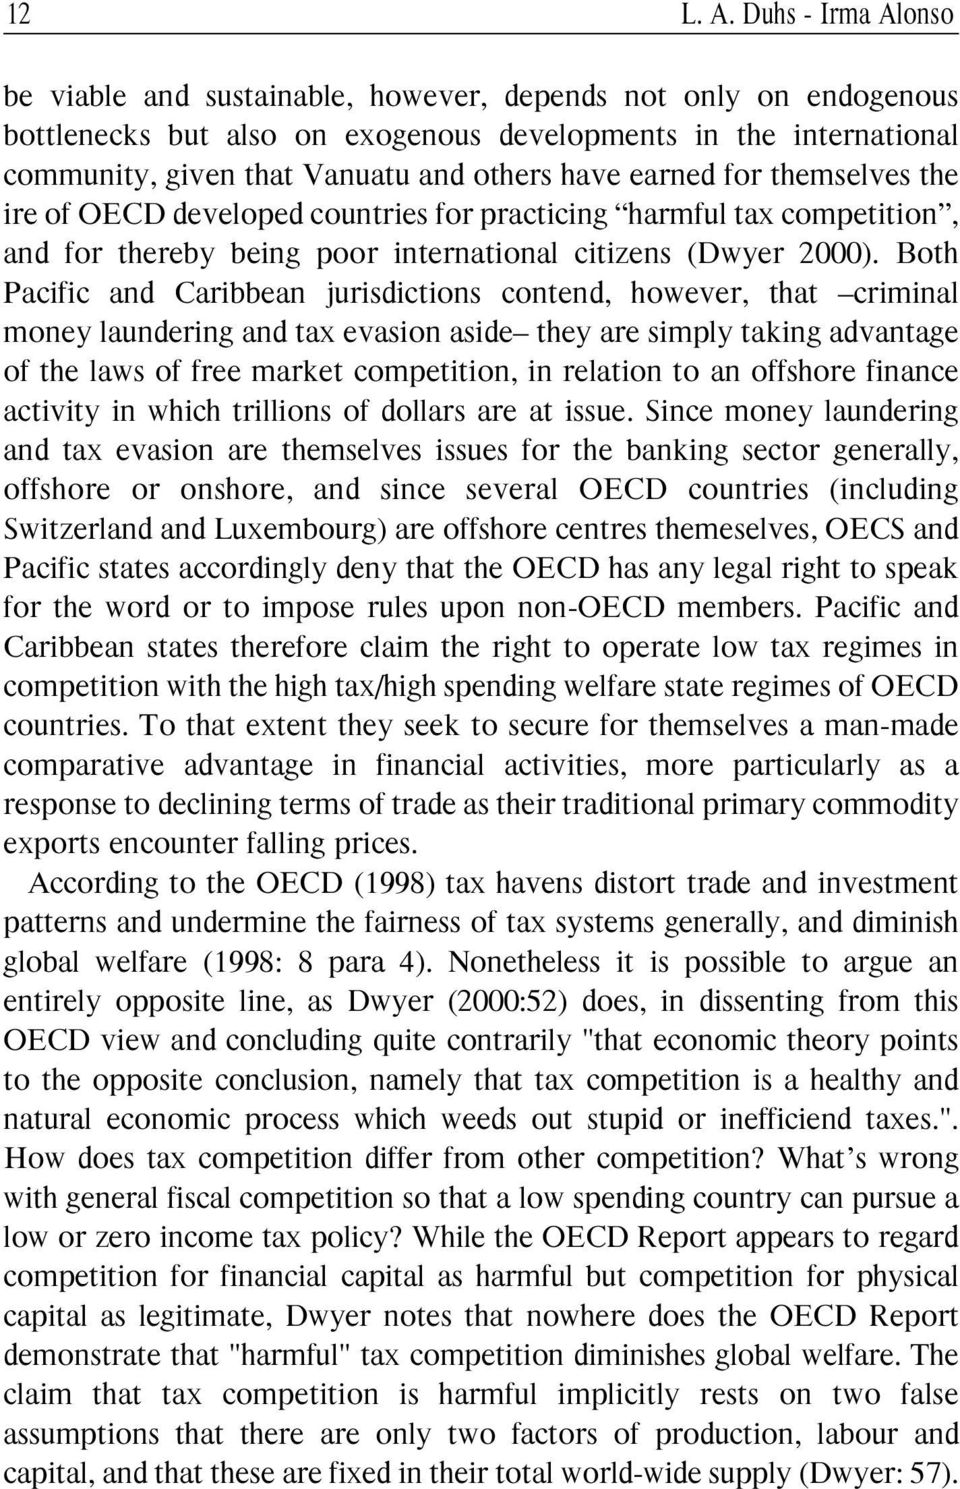 earned for themselves the ire of OECD developed countries for practicing harmful tax competition, and for thereby being poor international citizens (Dwyer 2000).